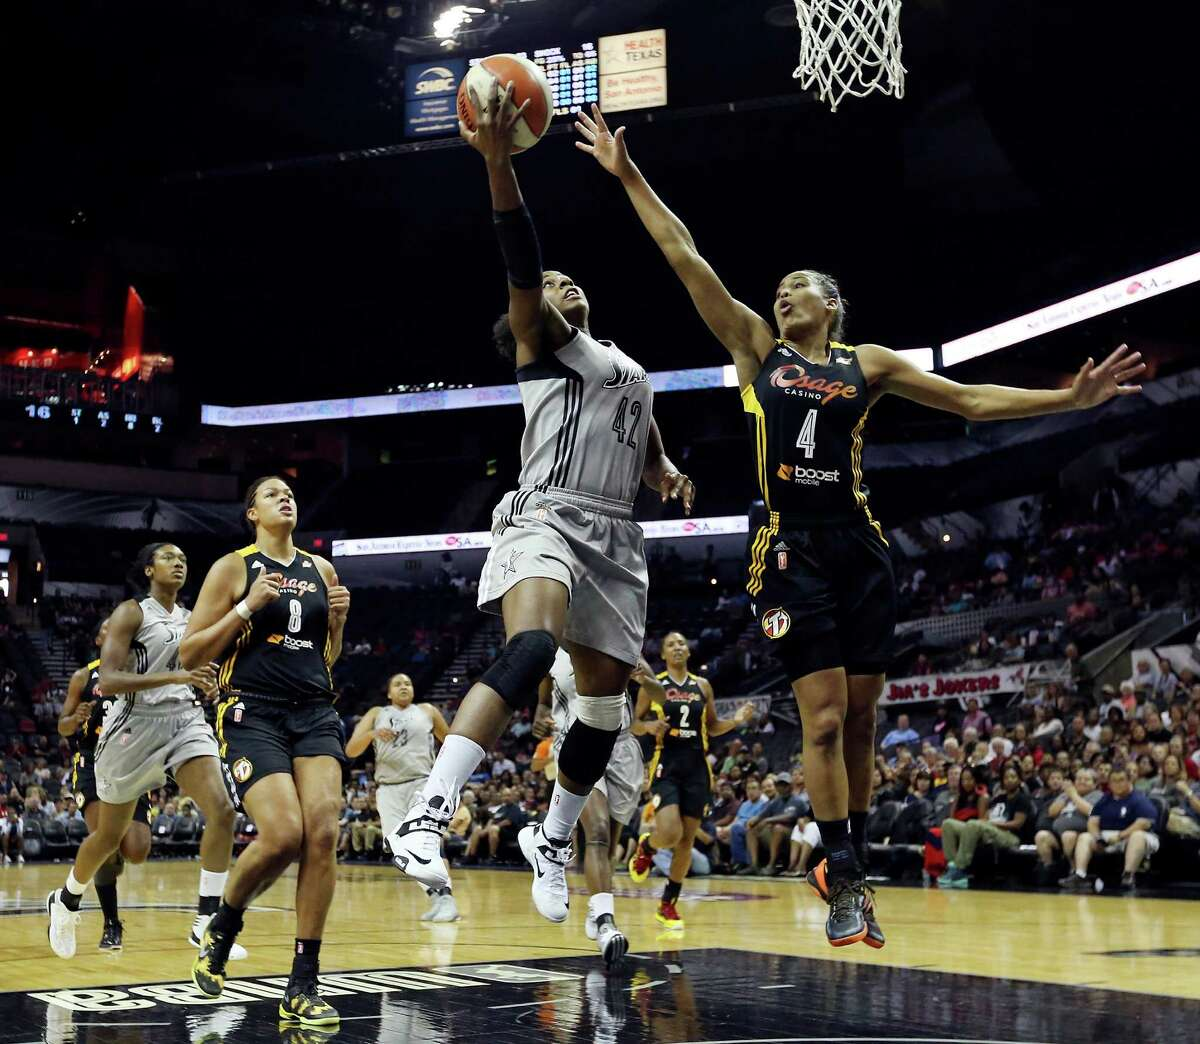 Silver Stars' Shenise Johnson shoots around Shock's Skylar Diggins during first half action Sunday Aug. 4, 2013 at the AT&T Center.